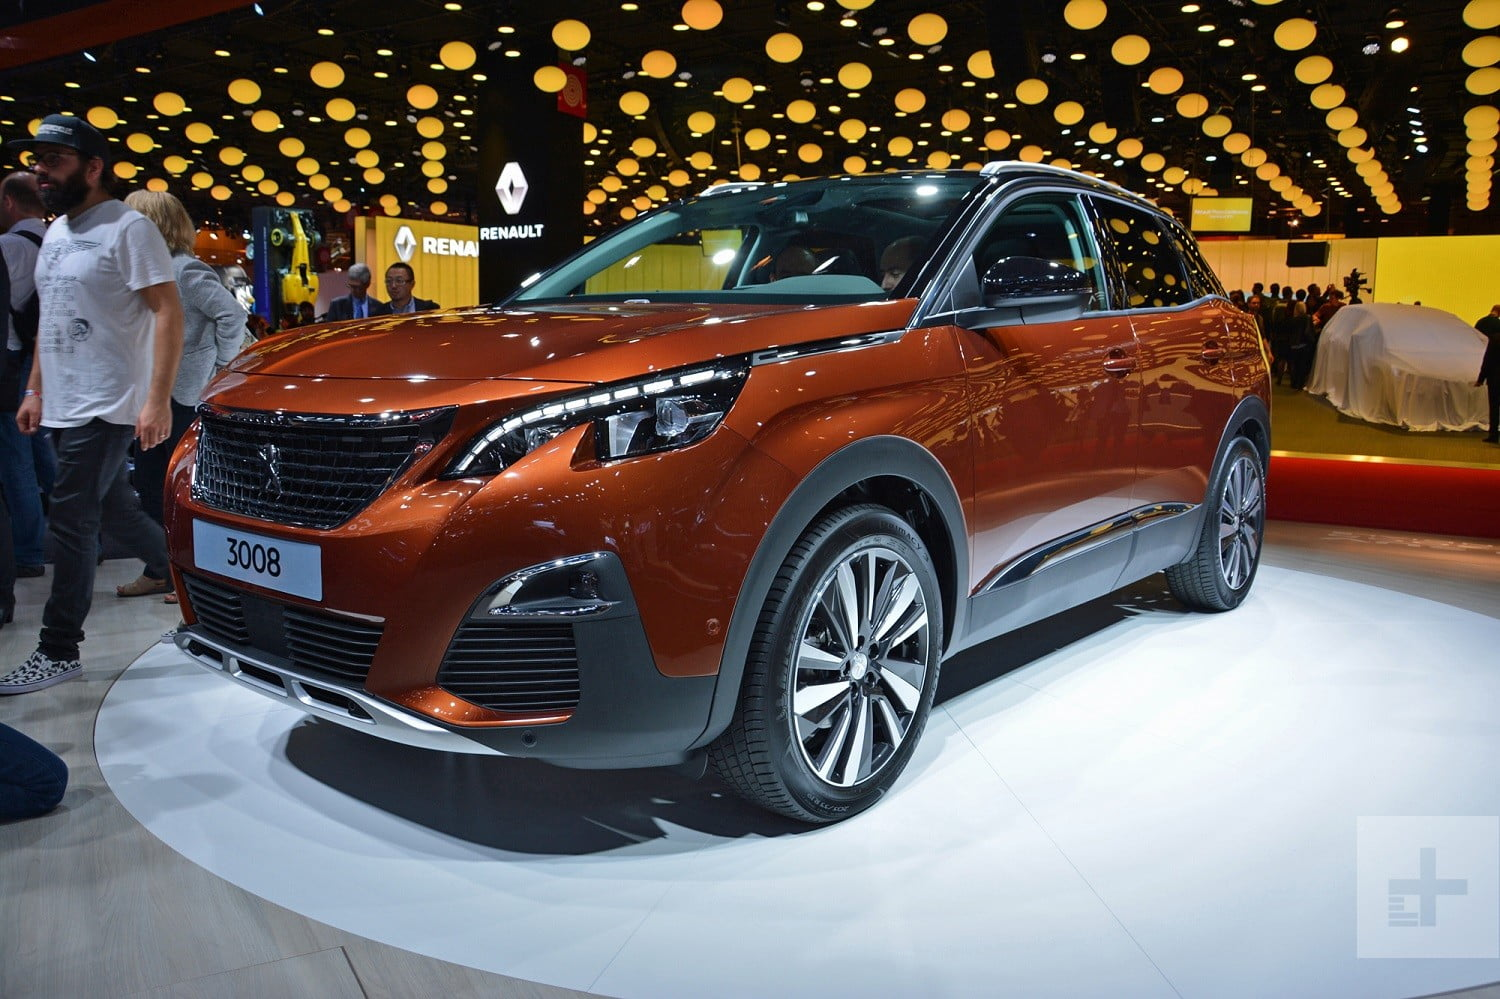 Garage Peugeot Paris Peugeot Details Mobility Focused Tech Led U S Comeback Digital